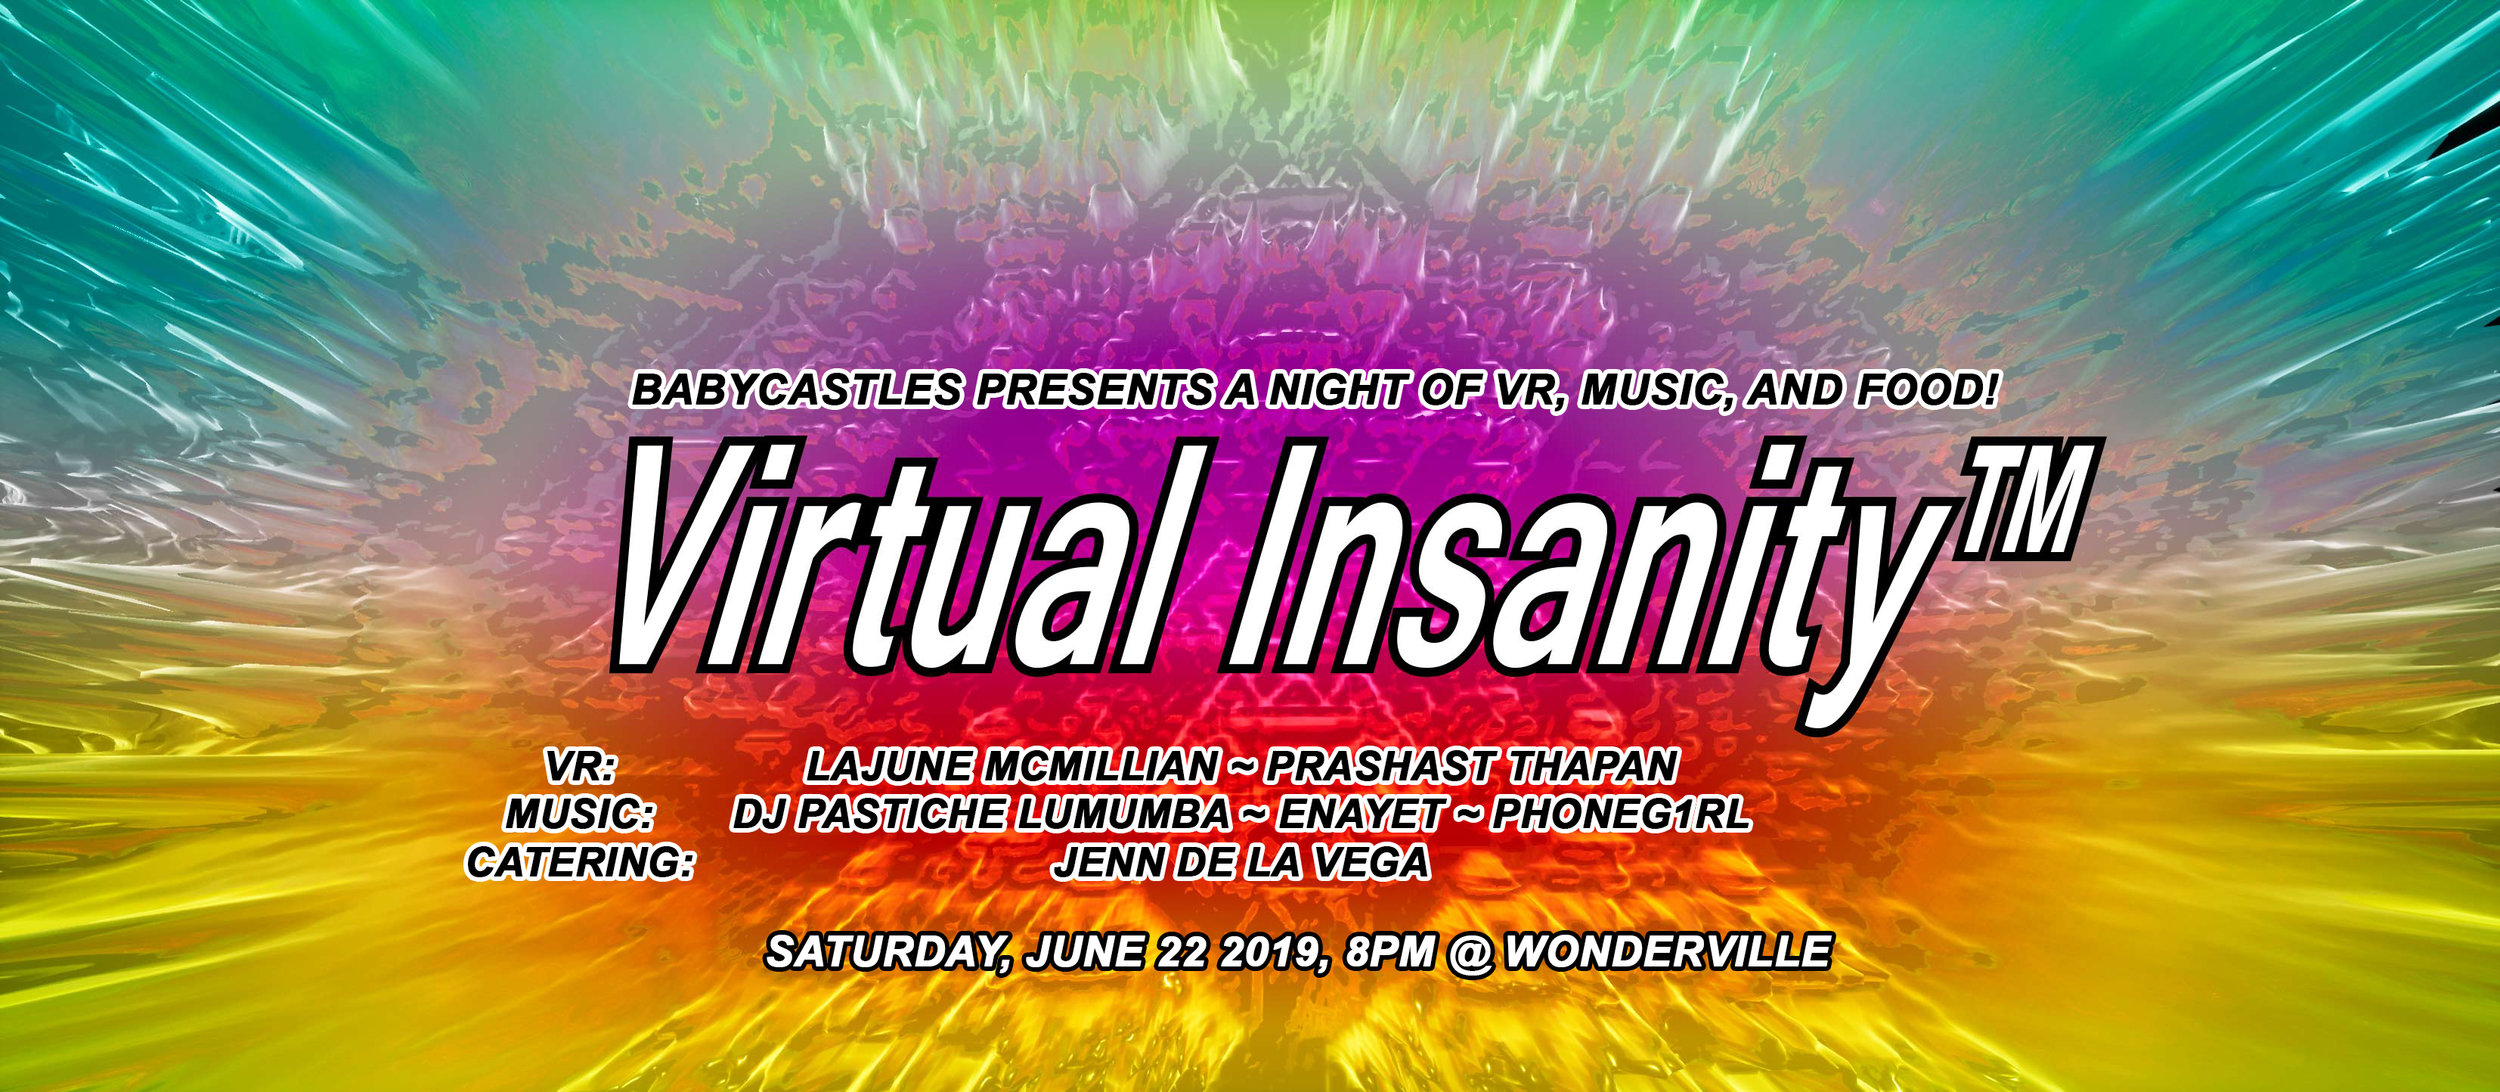 https://withfriends.co/Event/1914220/Babycastles_presents_the_third_night_of_Virtual_Insanity